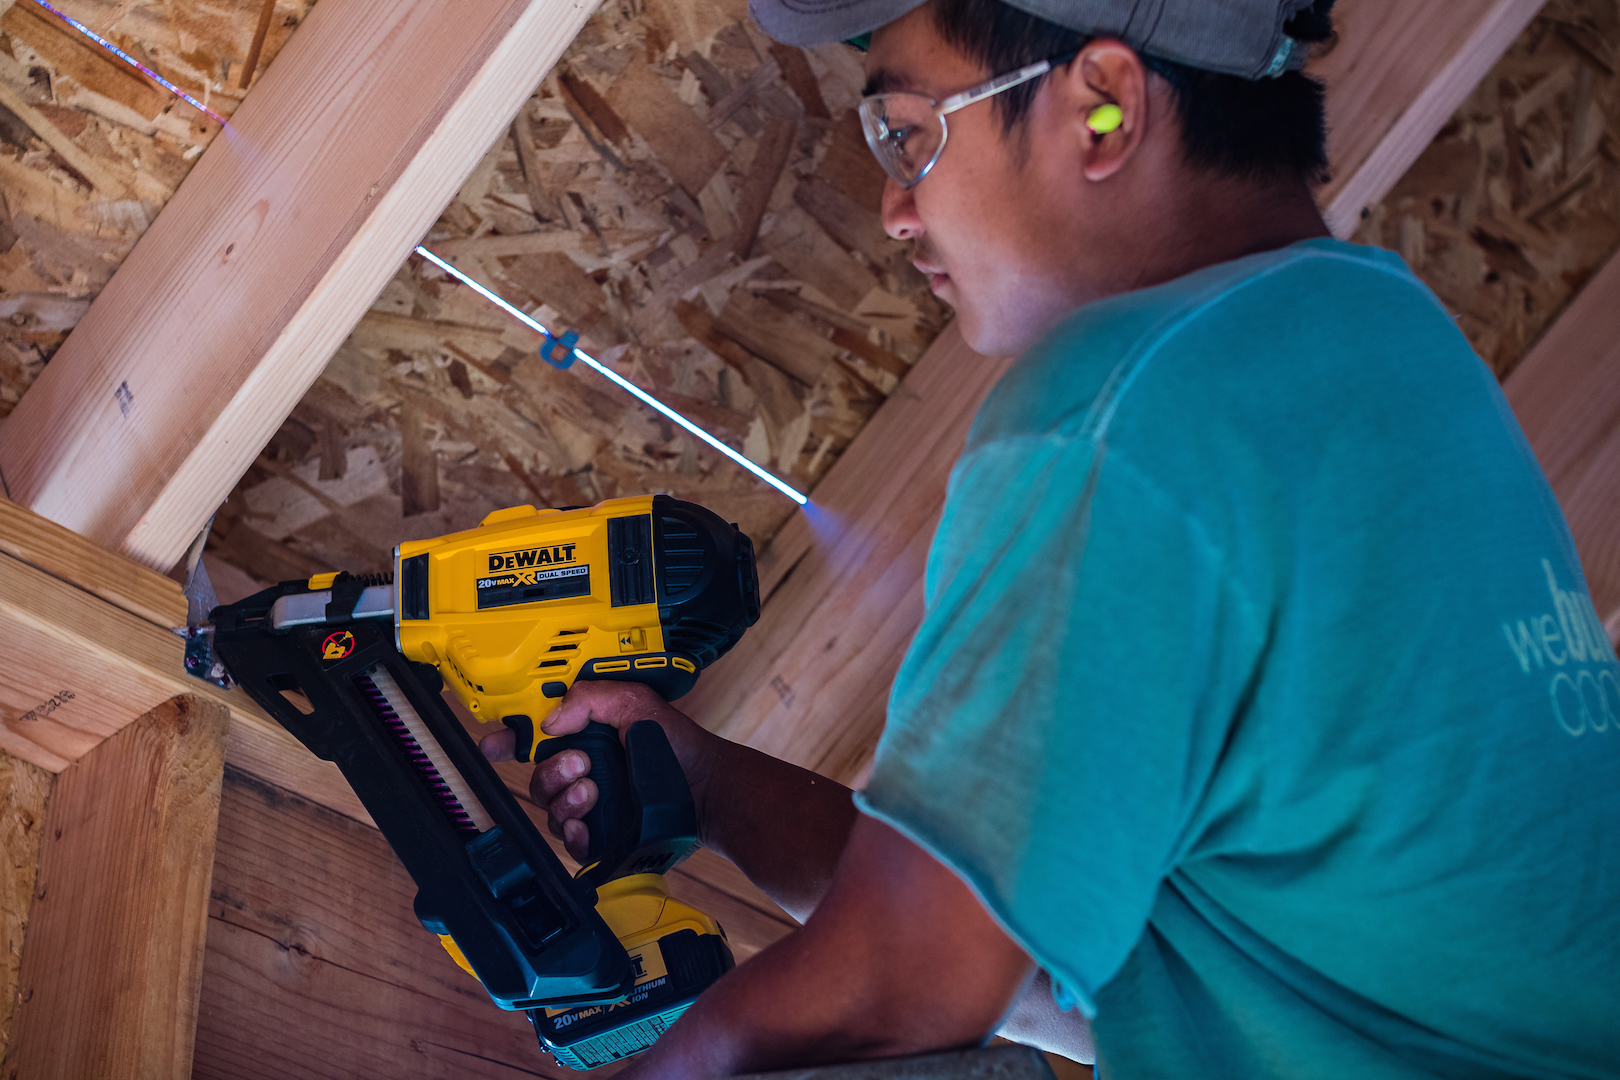 Dewalt Cordless Positive Placement Nailer Jlc Online